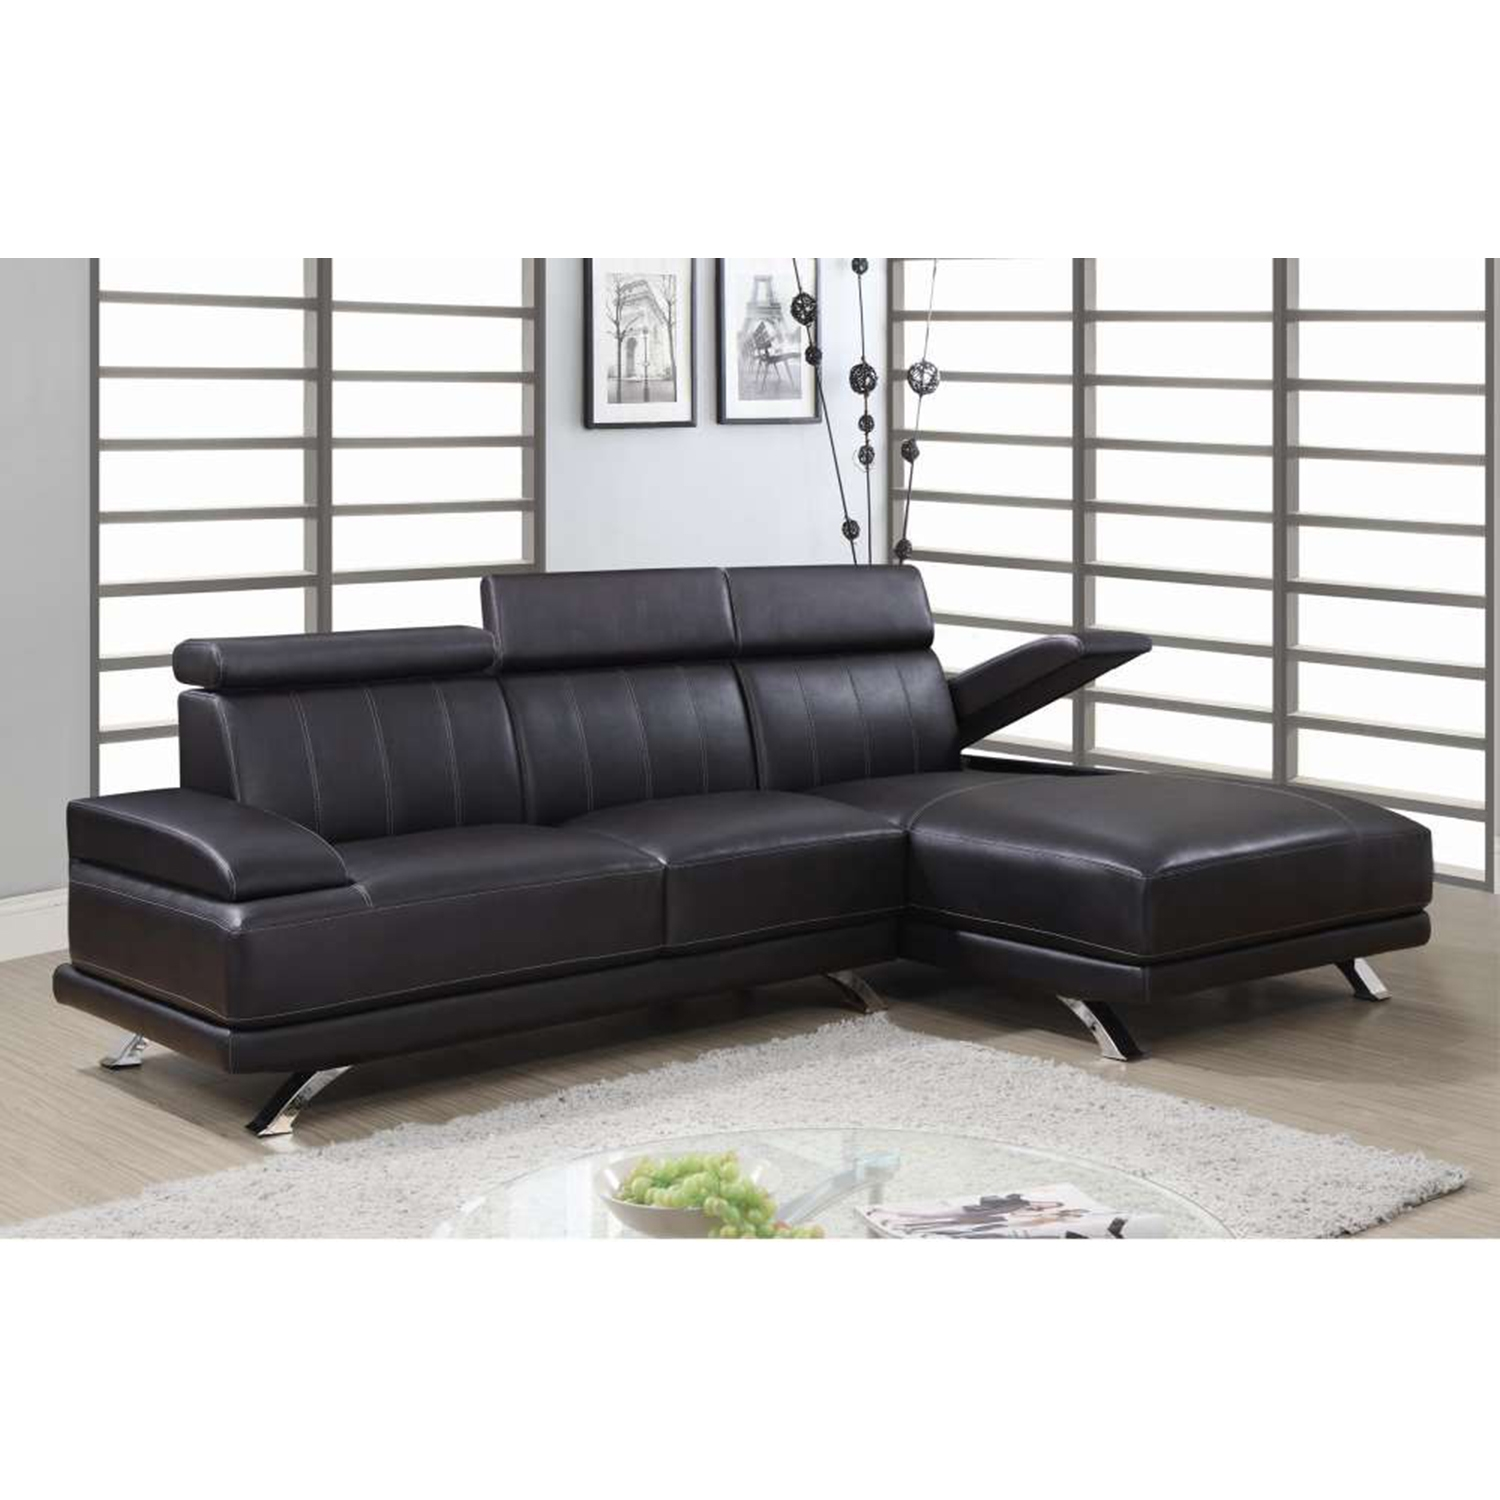 Lindsey 2-Piece Leather Sectional Sofa in Chocolate